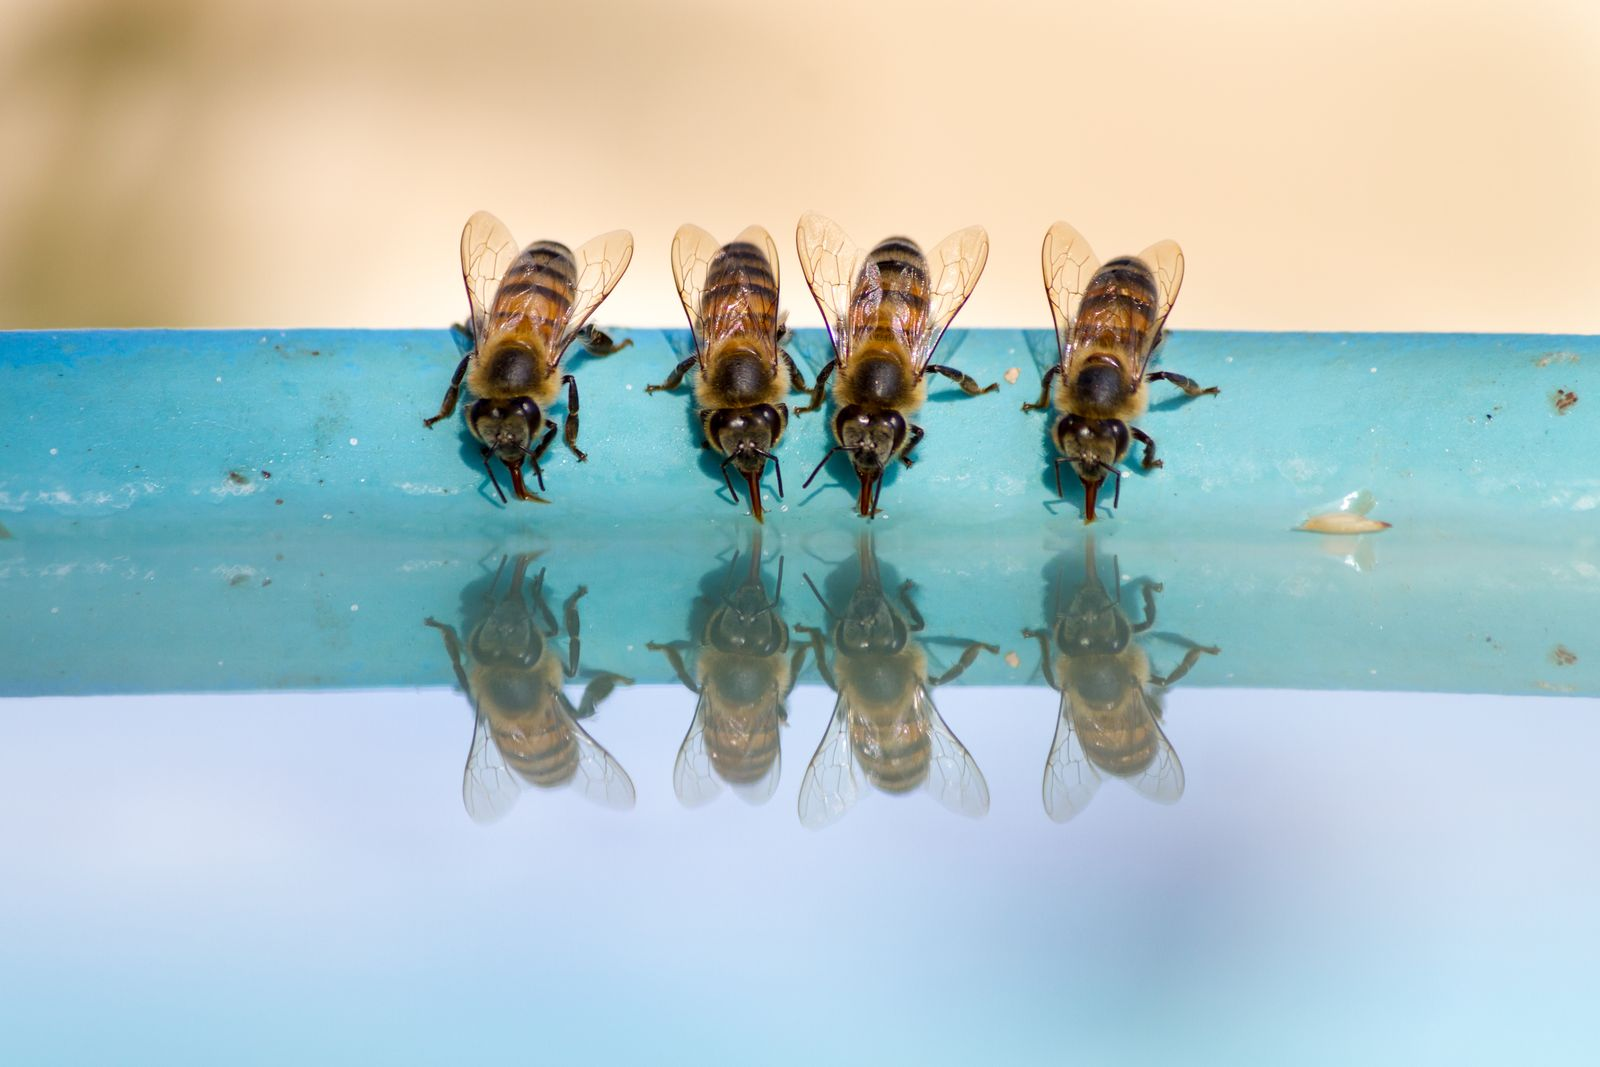 Four bees drinking water